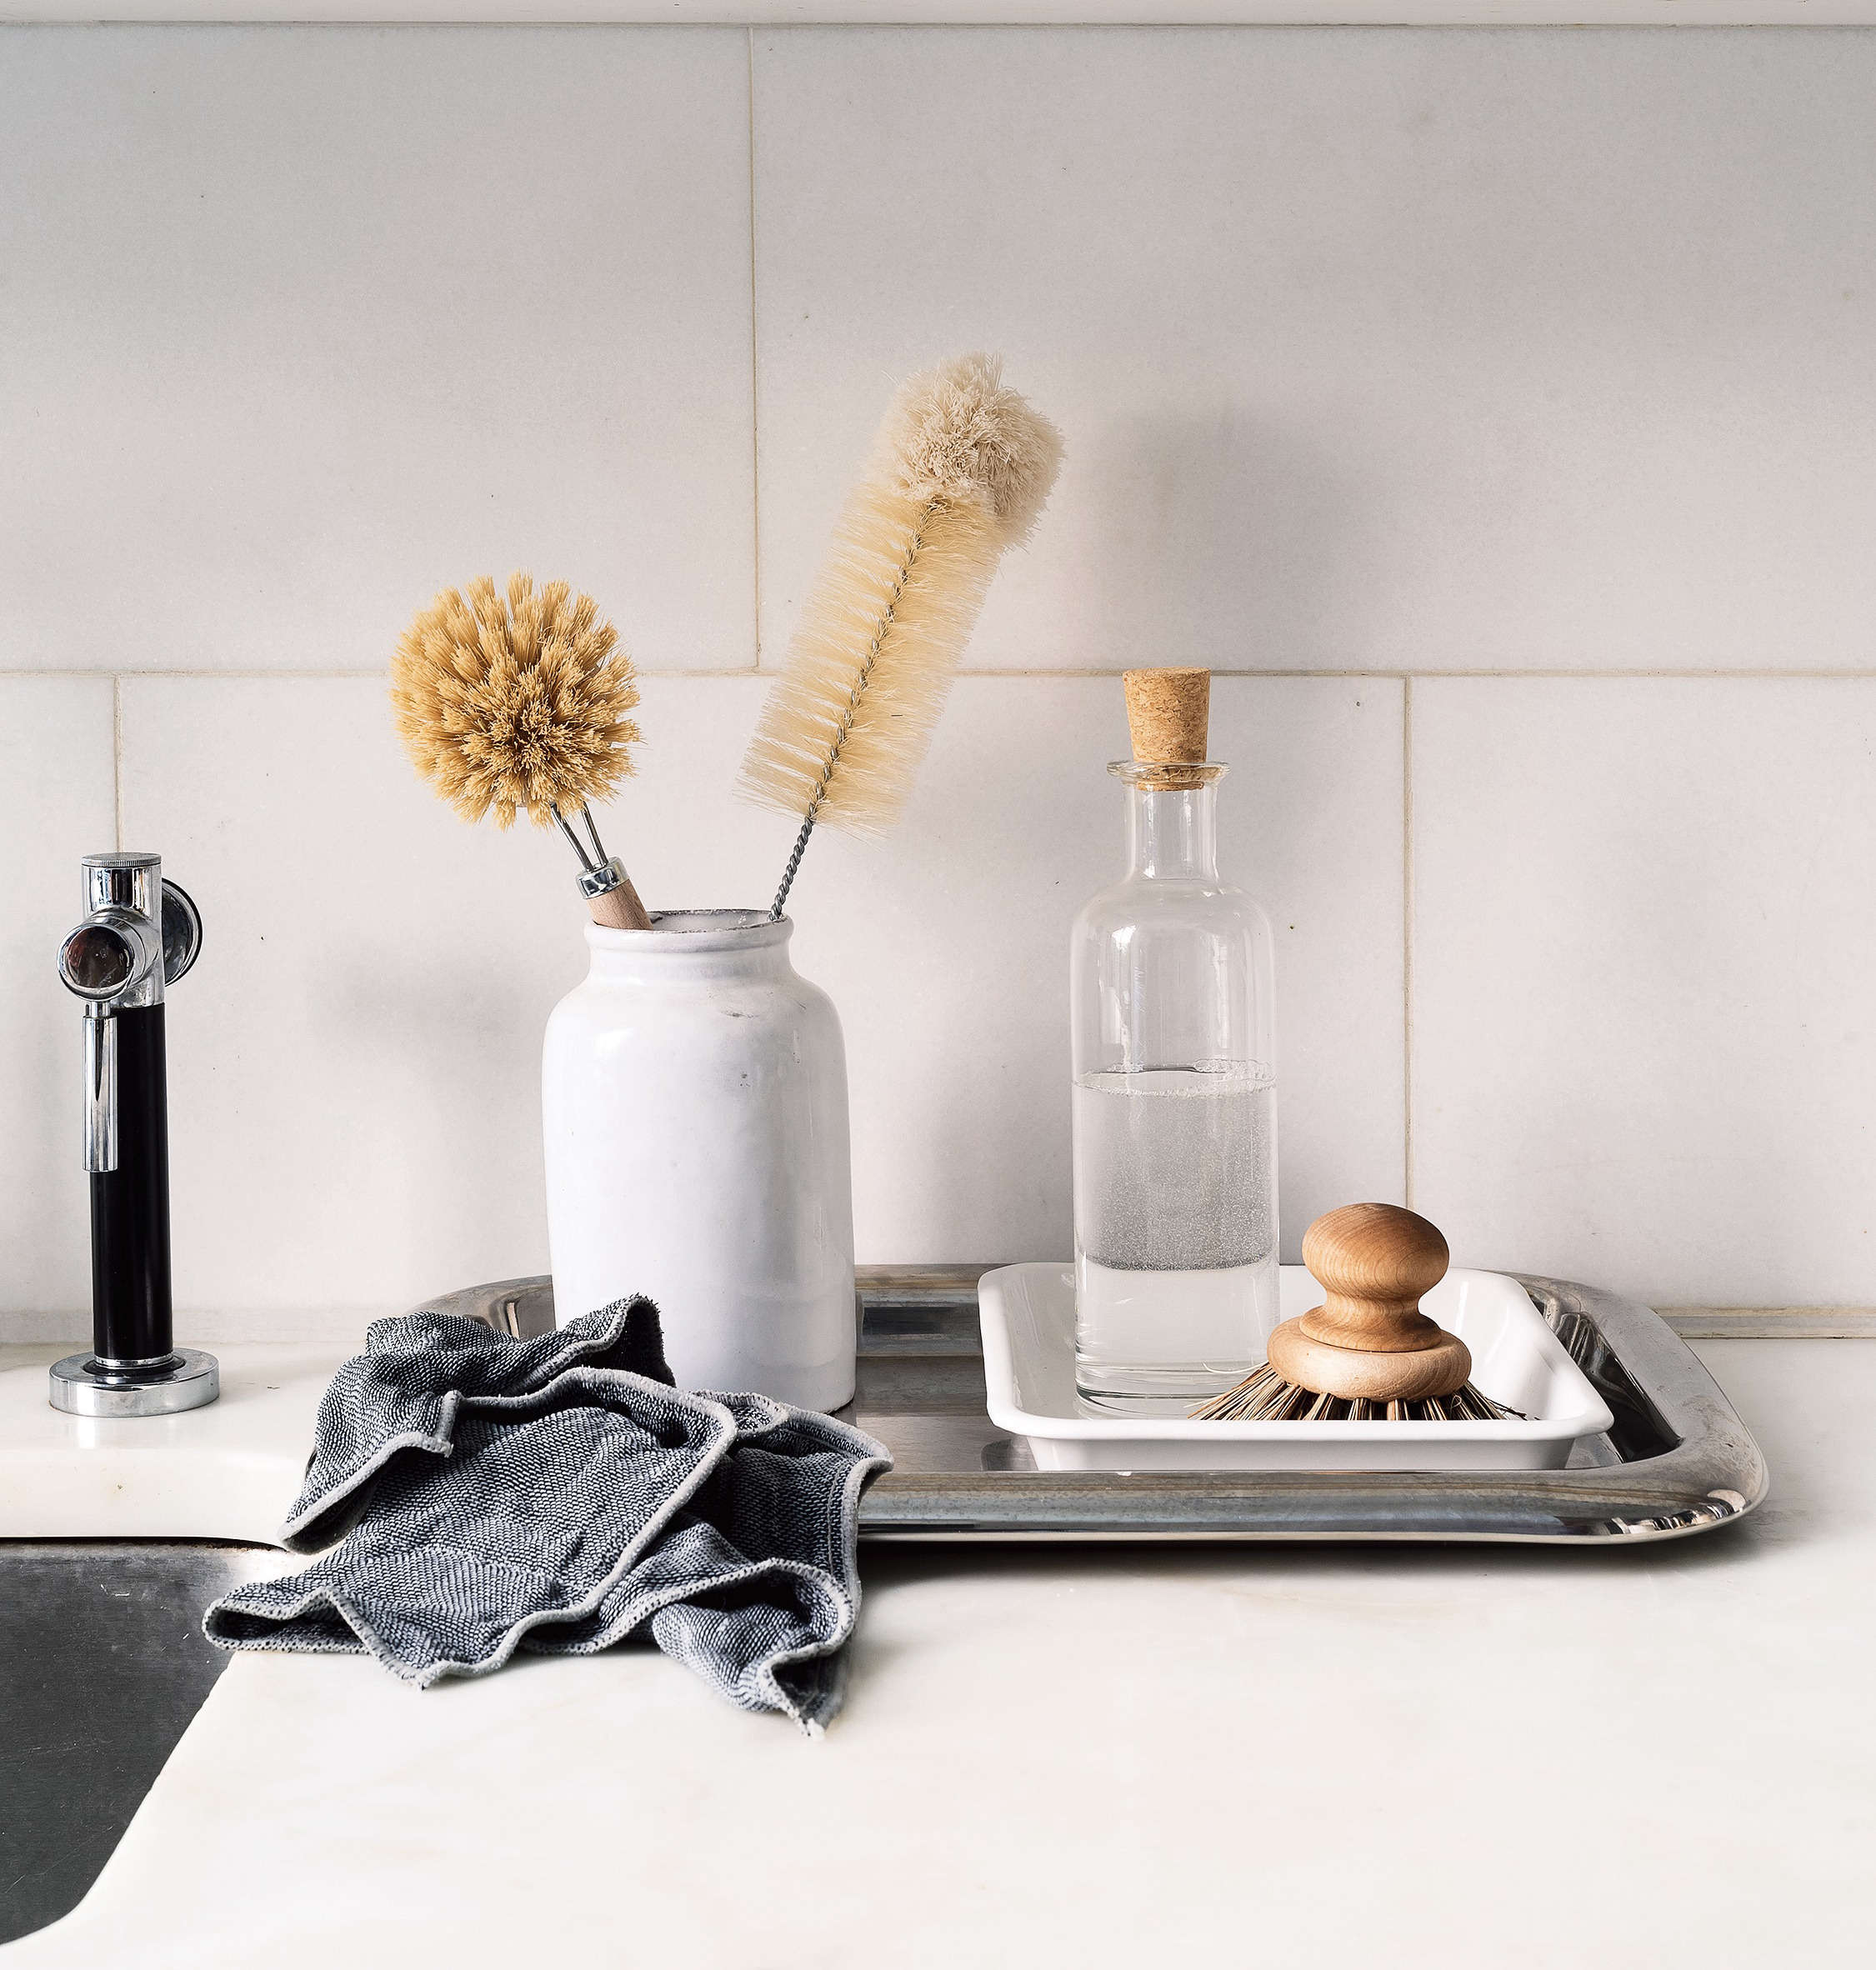 Domestic Science: Our Editors' 27 Best Cleaning Tips and Hacks